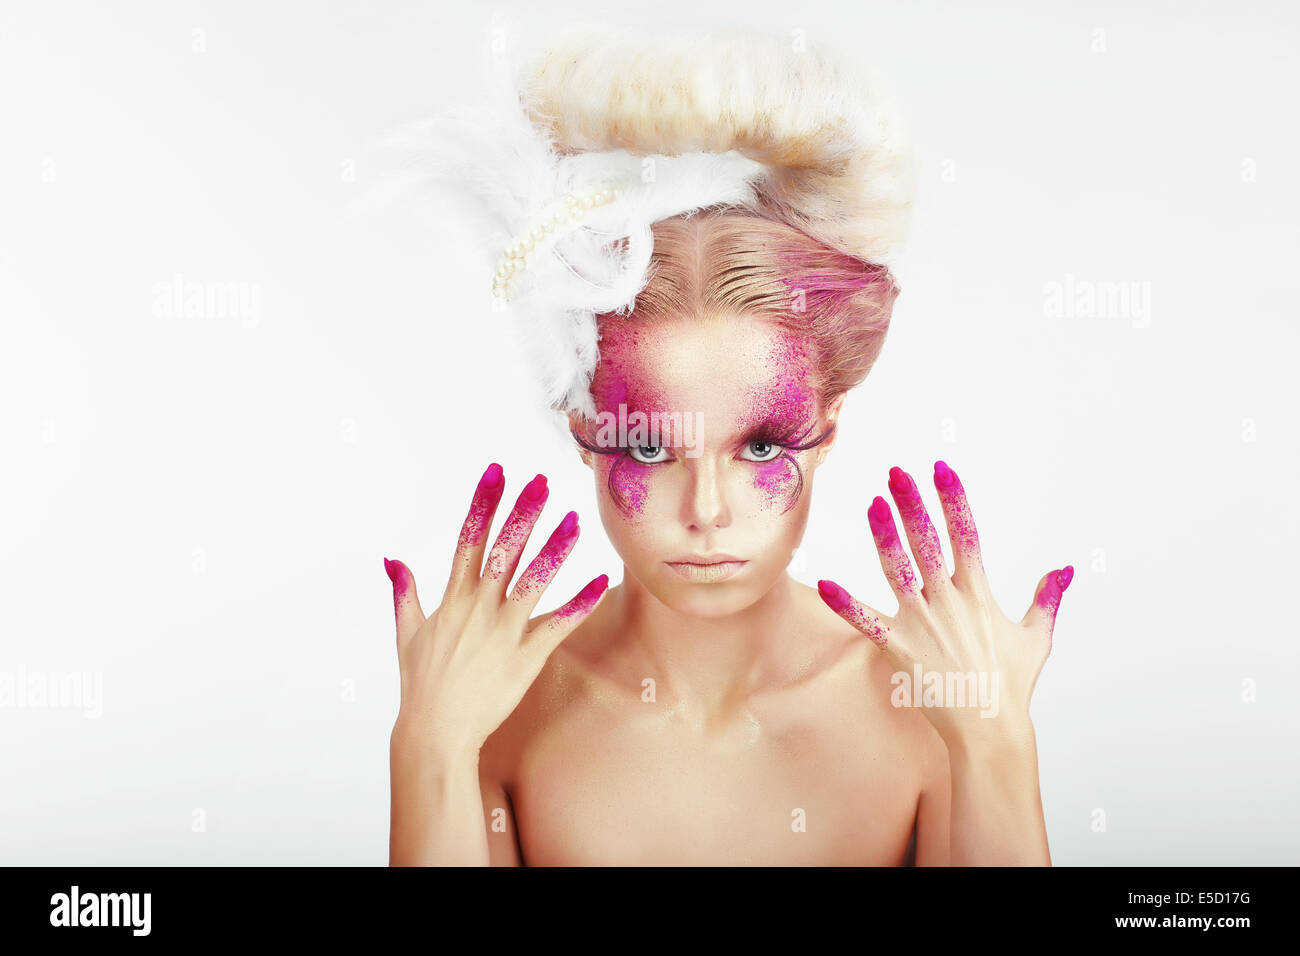 Creative Makeup. Outre Woman's Spotted Face and Stained Fingernails - Stock Image